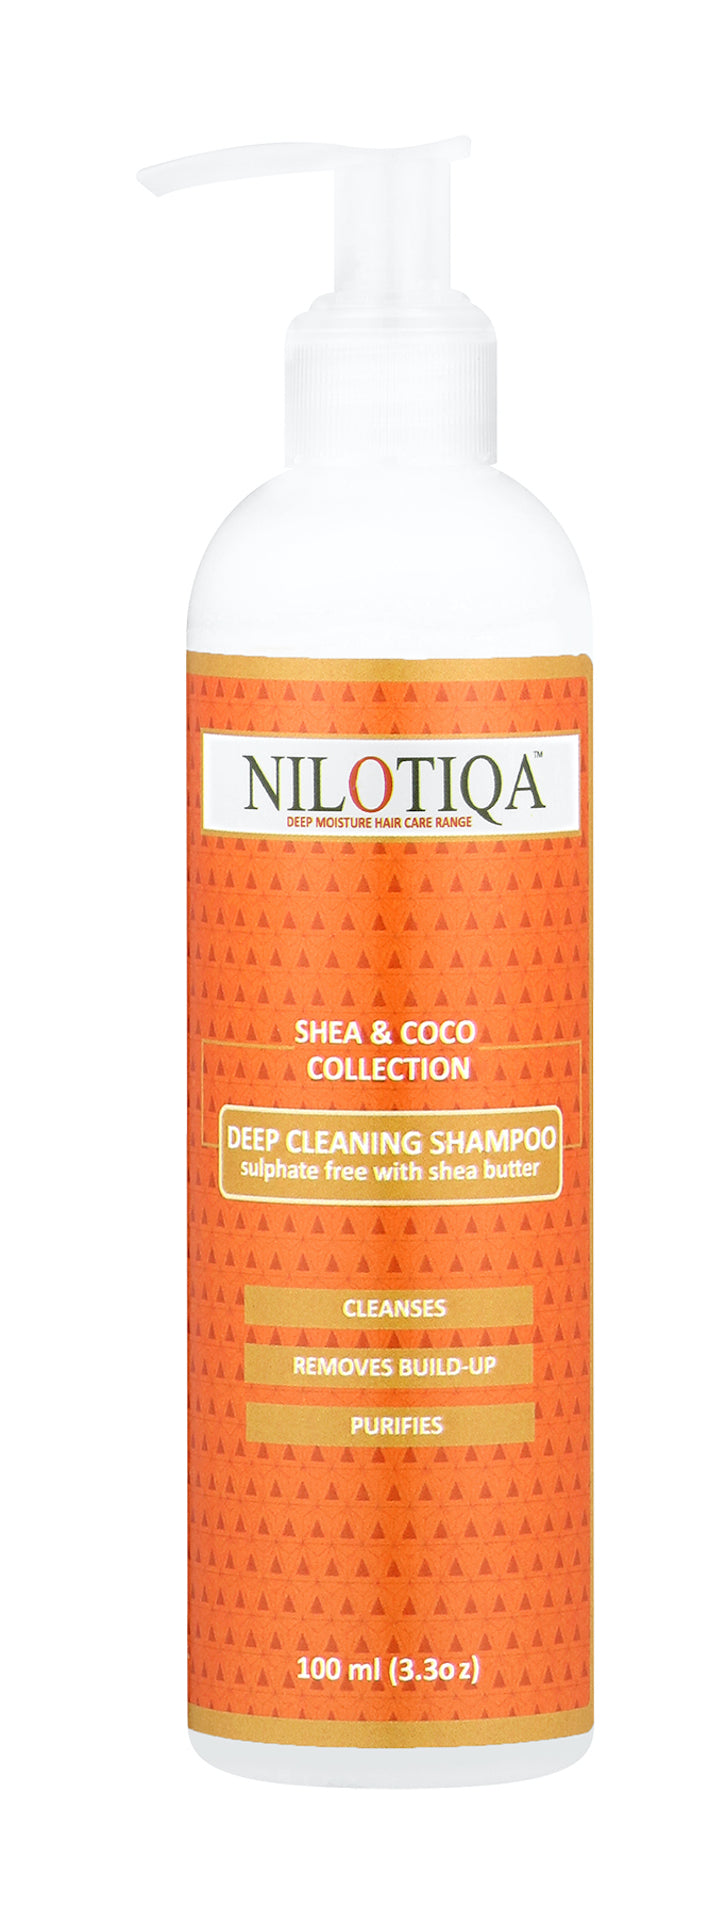 100ml Sulphate Free Cleansing Shampoo